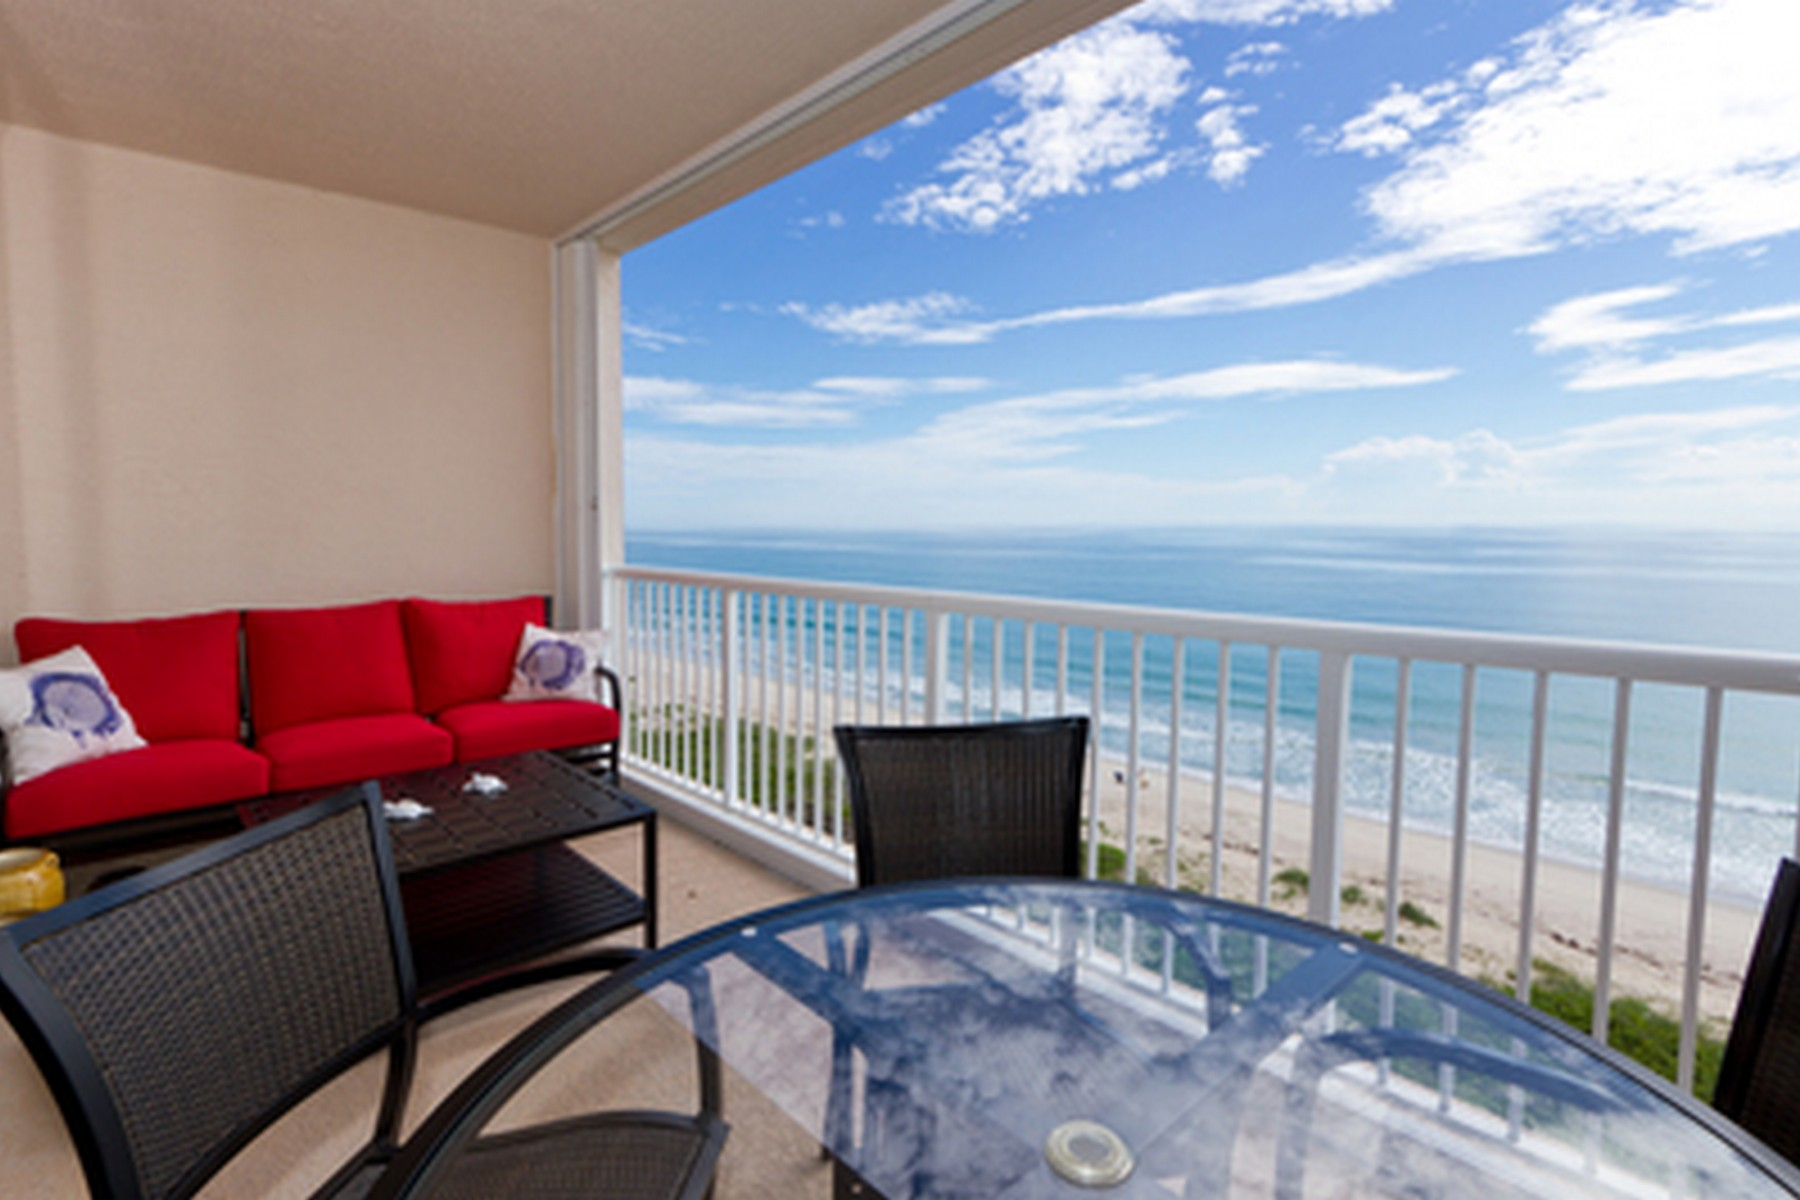 condominiums for Sale at The Sky Touches the Sea of this Ninth Floor Oceanfront Condo! 4160 N Highway A1A #903A Hutchinson Island, Florida 34949 United States